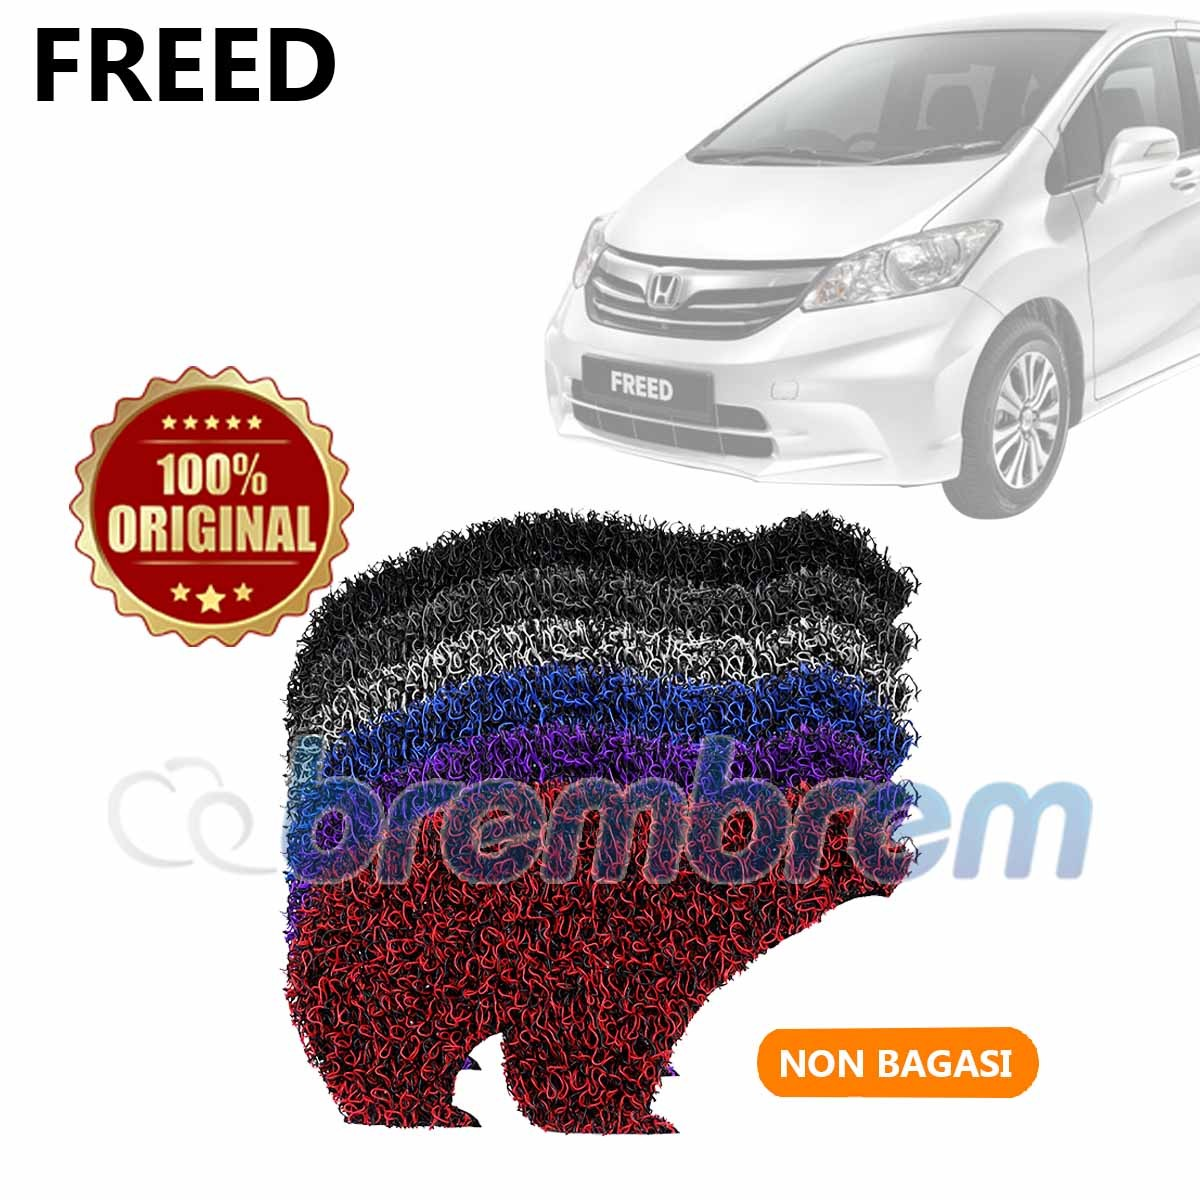 KARPET FIRST CLASS NON BAGASI HONDA FREED